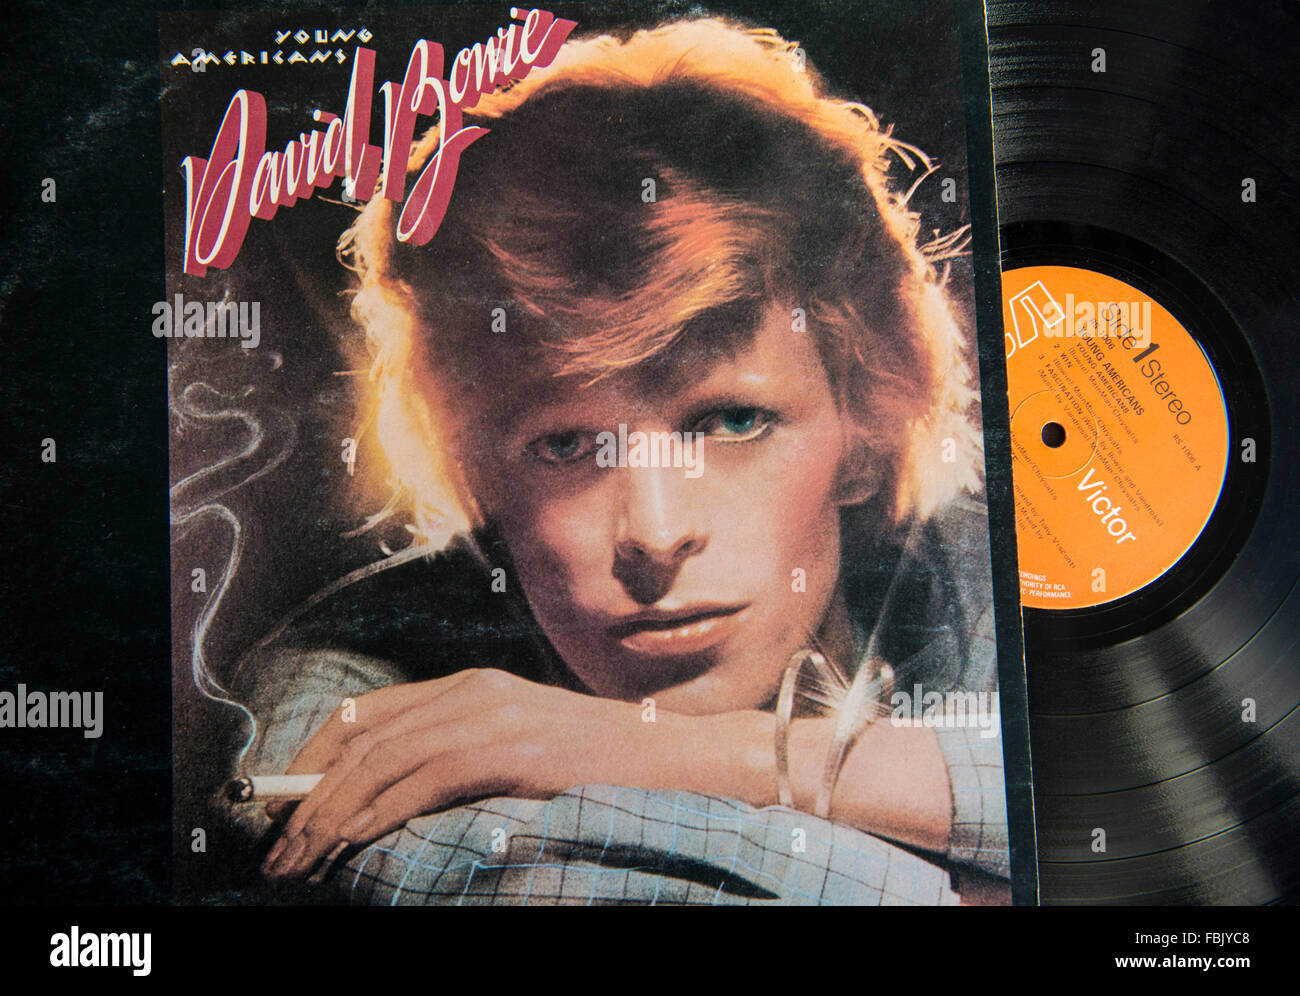 David Bowie's Young Americans album on vinyl - Stock Image